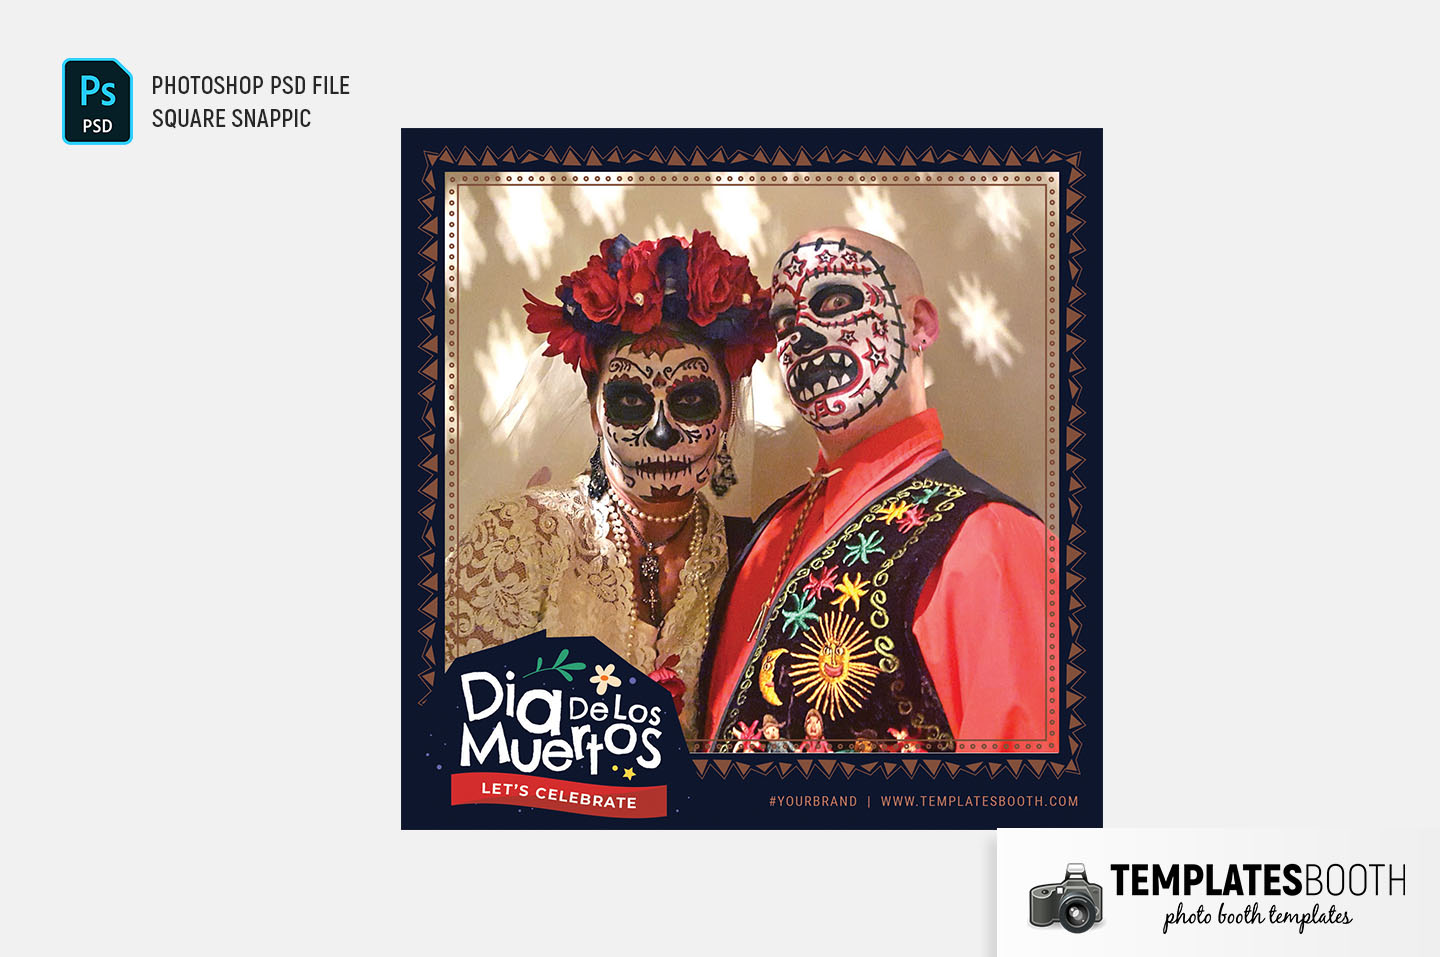 Day of The Dead Photo Booth Template (Snappic)